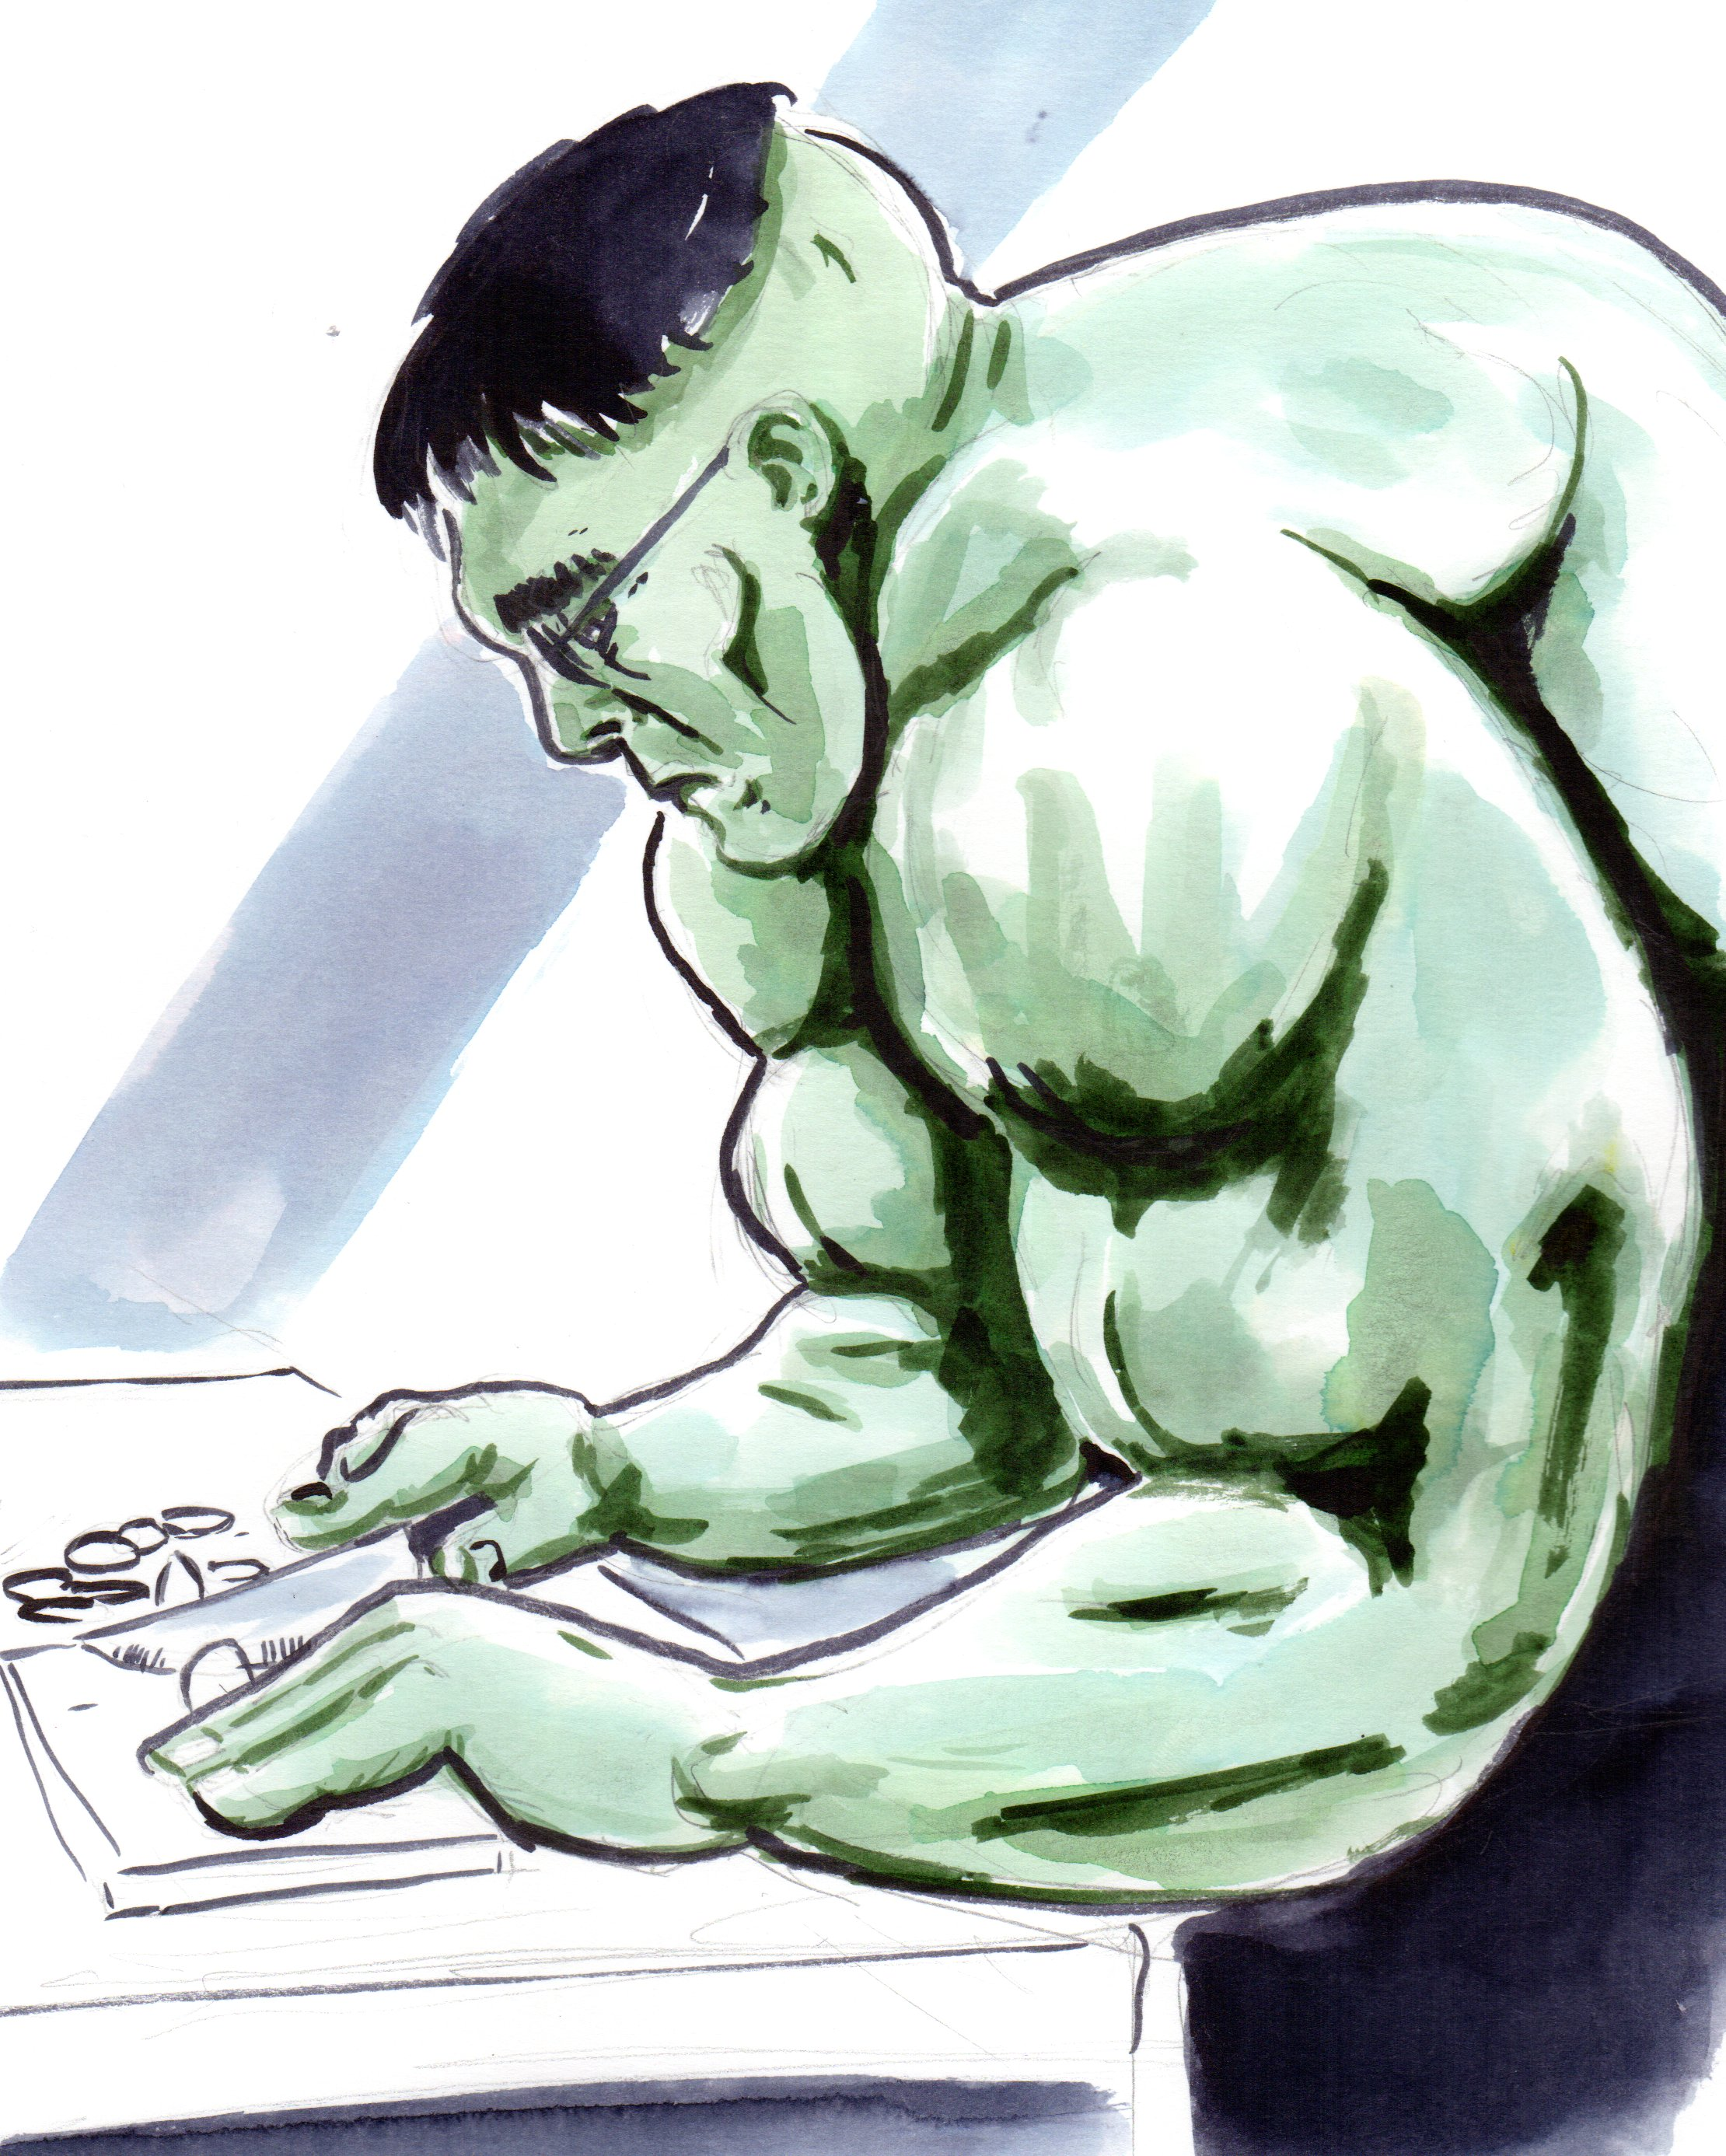 incredible immortal nerd hulk marvel bruce banner cooking